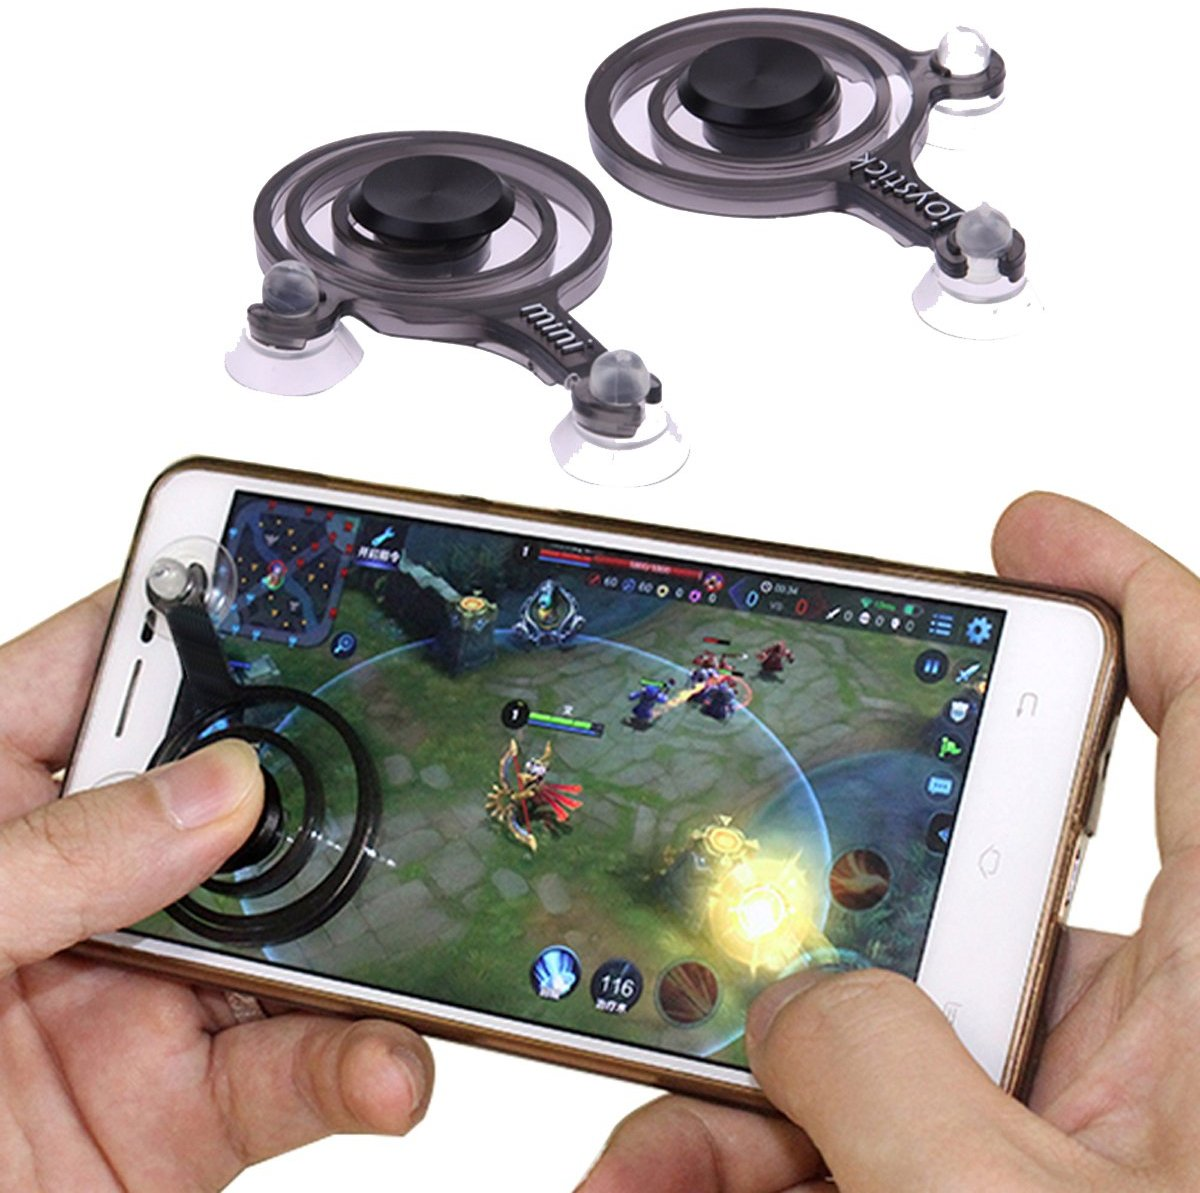 China Psp Joystick Wholesale Alibaba Terios Gamepad T3 Holder Jp Bluetooth Android Smartphone Vr Box Tv